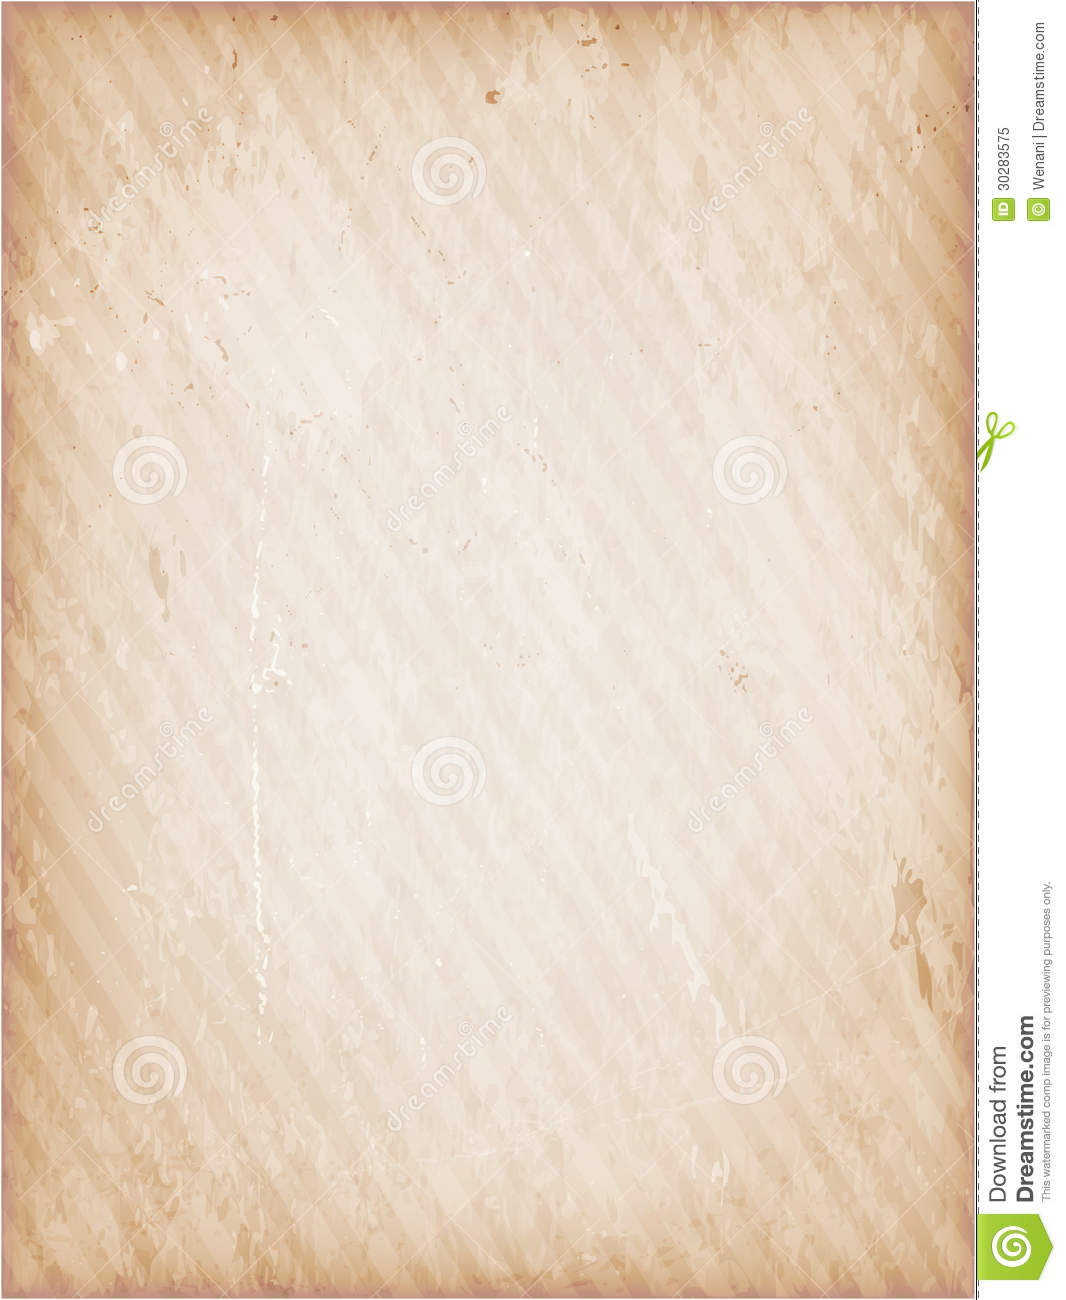 Grunge Texture With Copyspace Royalty Free Stock Photo ...